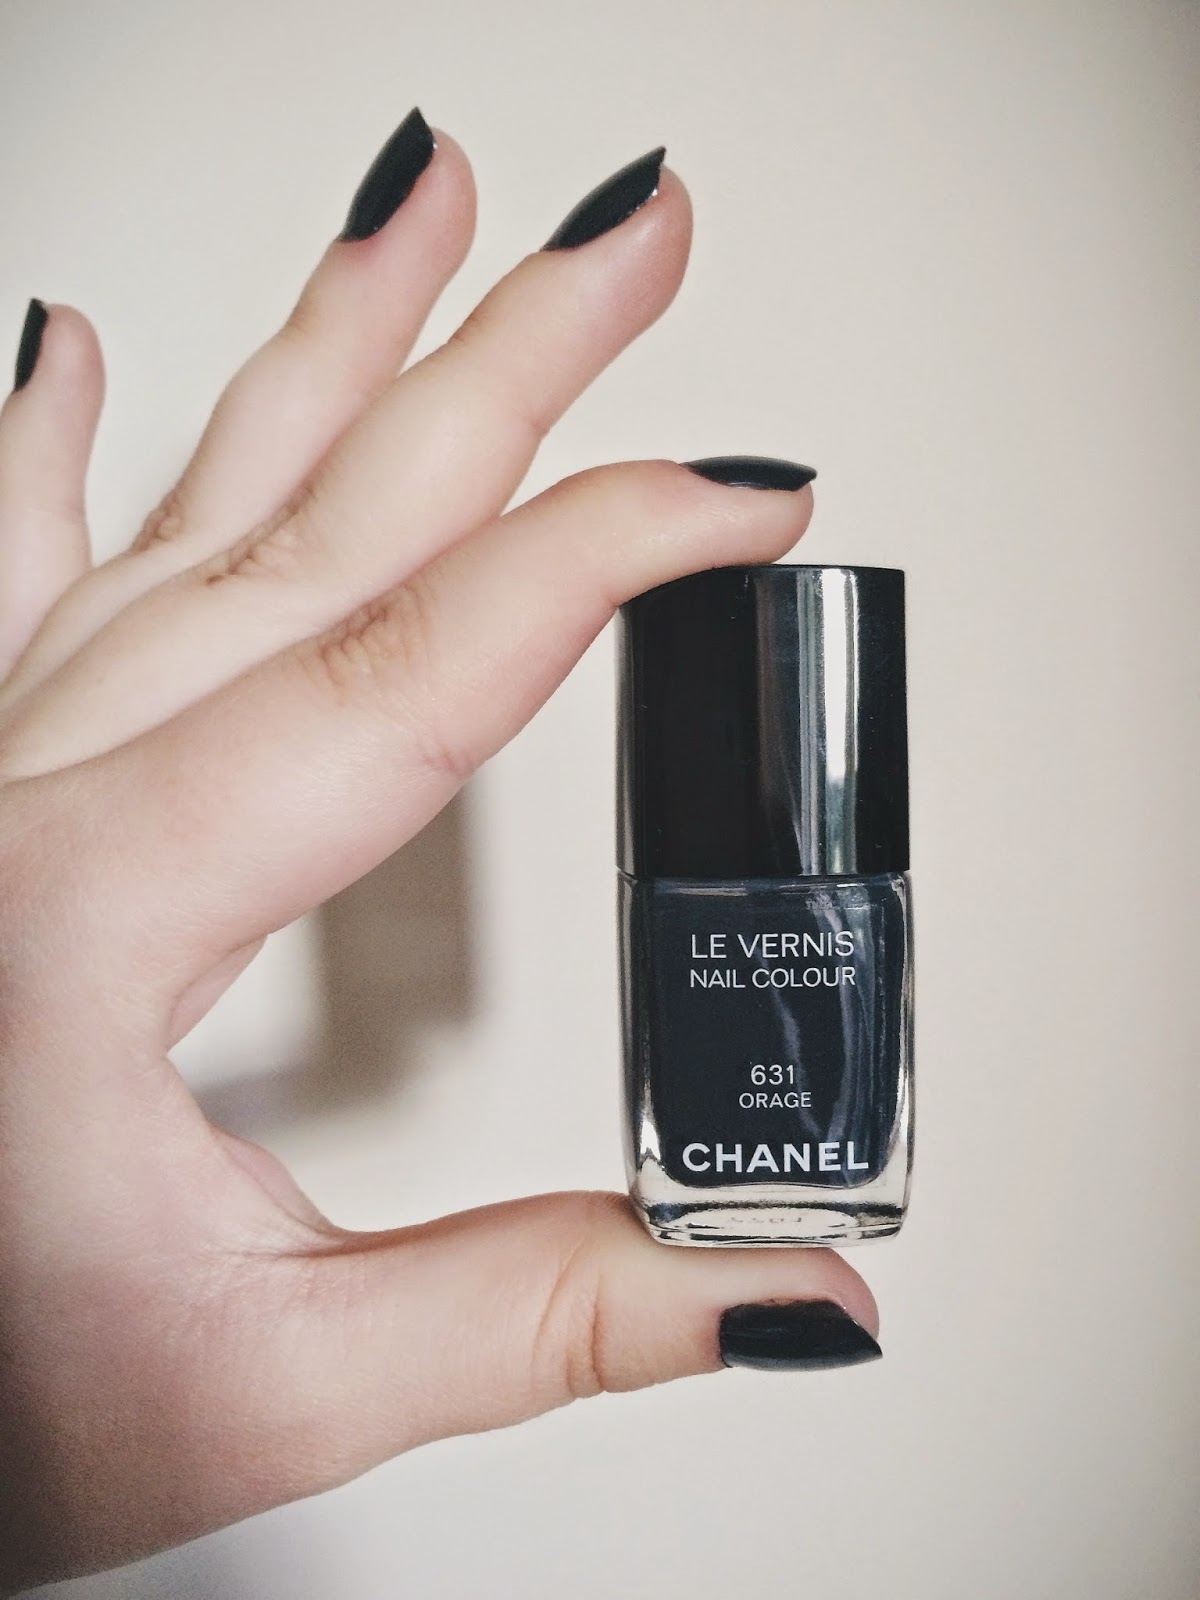 Chanel Nail Polish, Orage, Bramble and Thorn, Beauty, Makeup